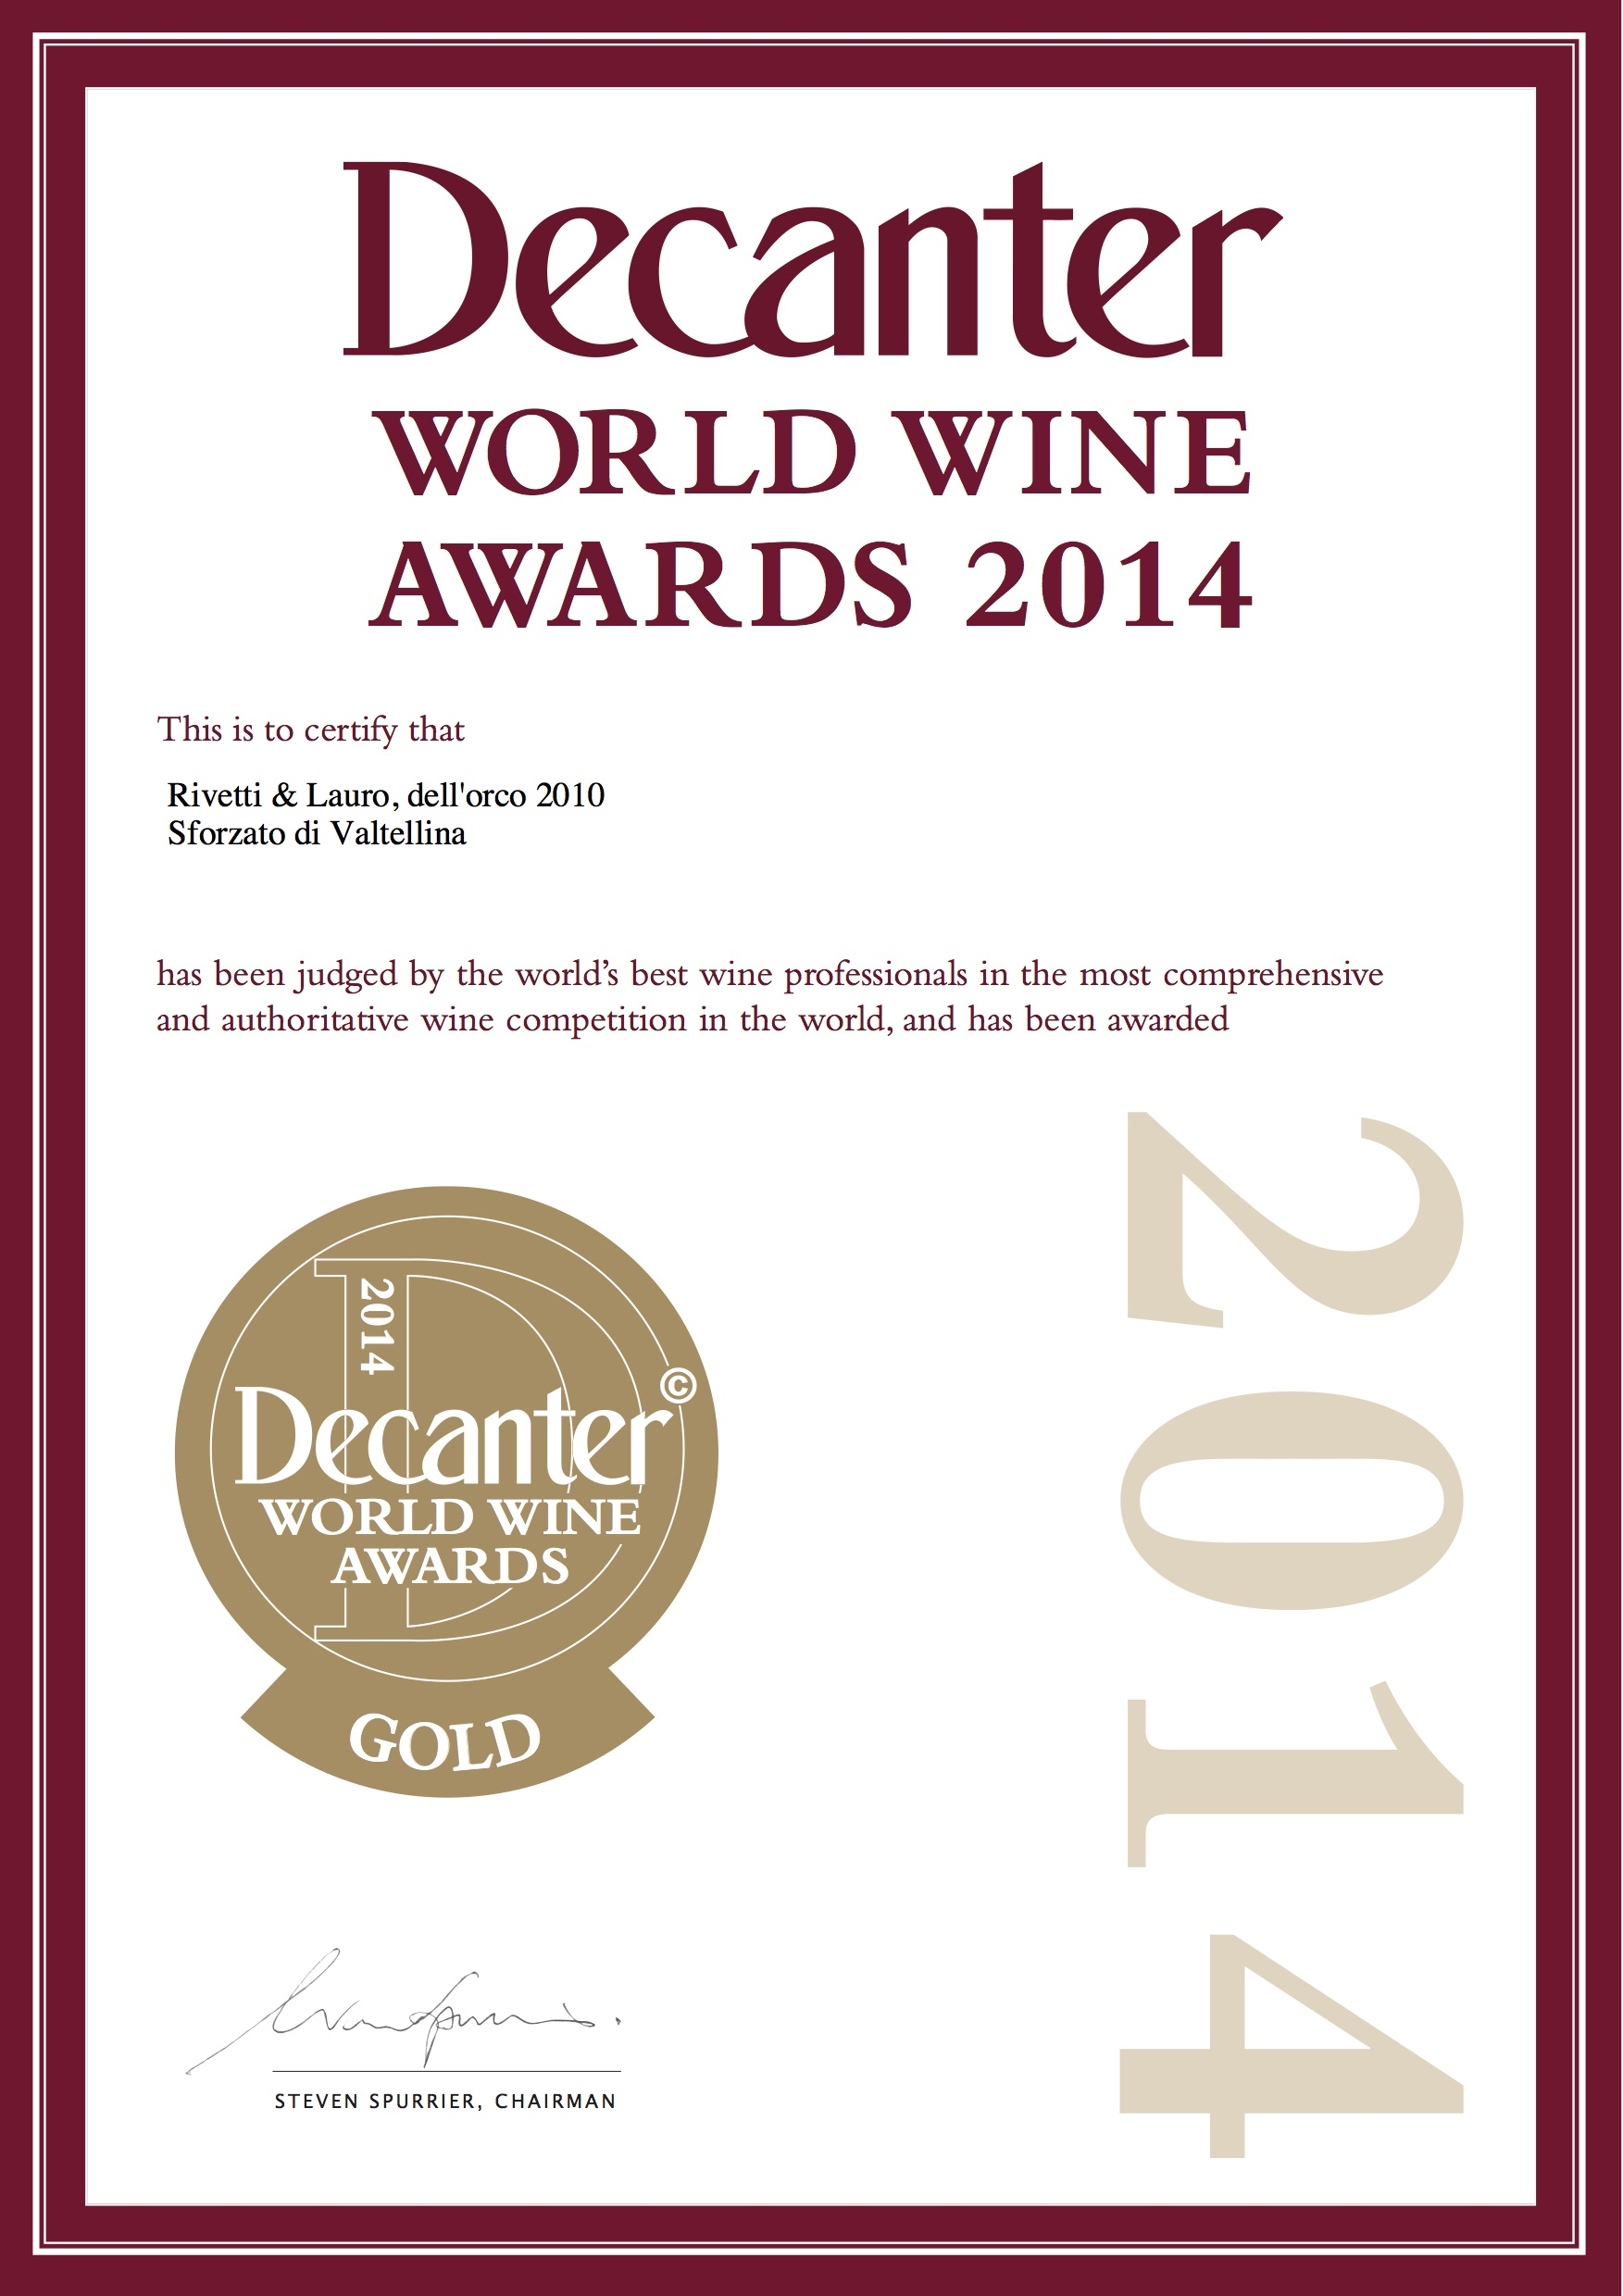 Decanter World Wine Awards 2014